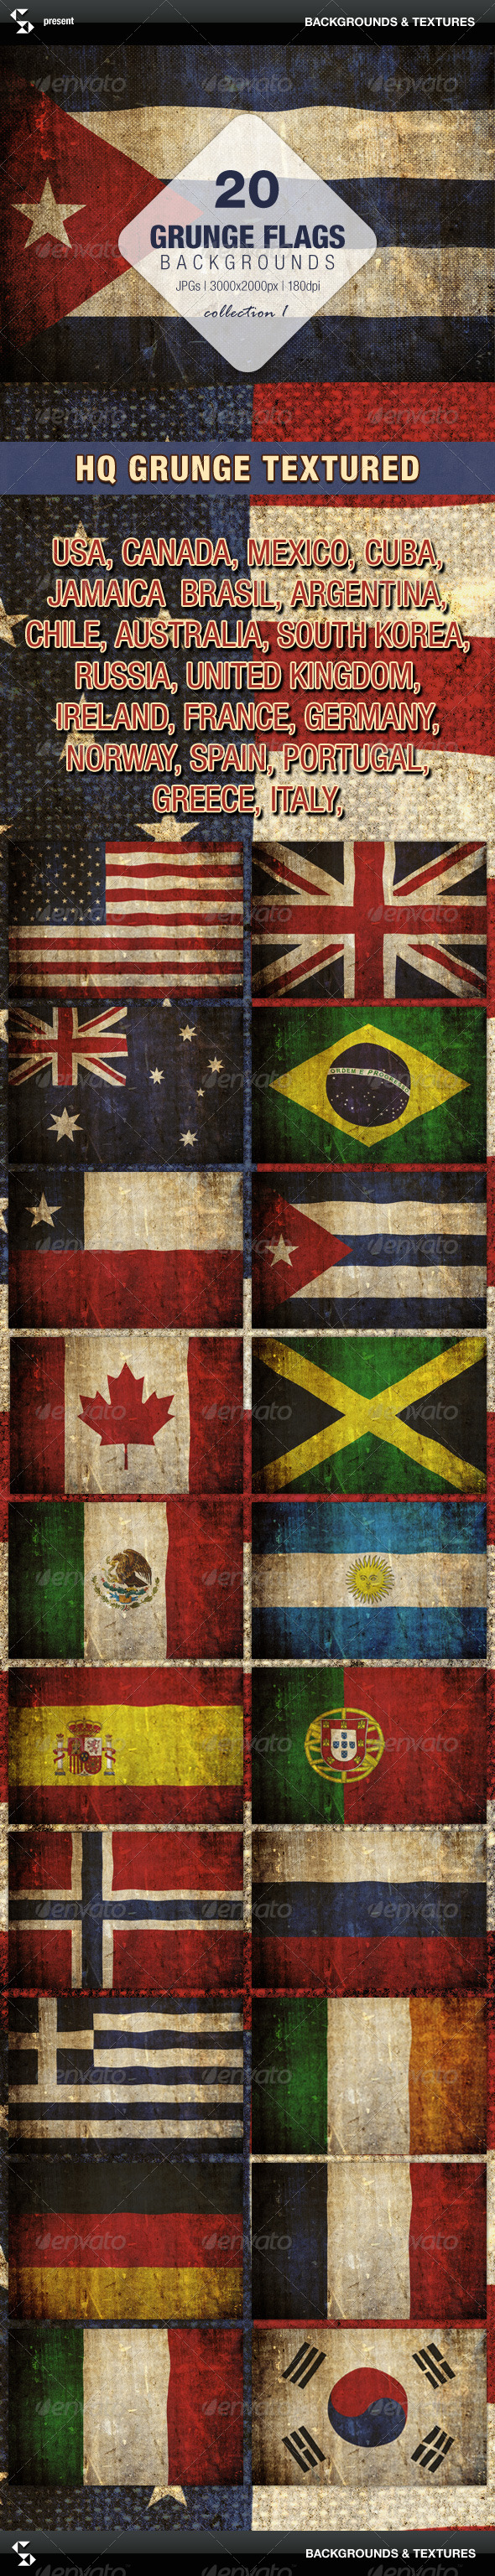 GraphicRiver Grunge Flags 20 countries around the world 7222303